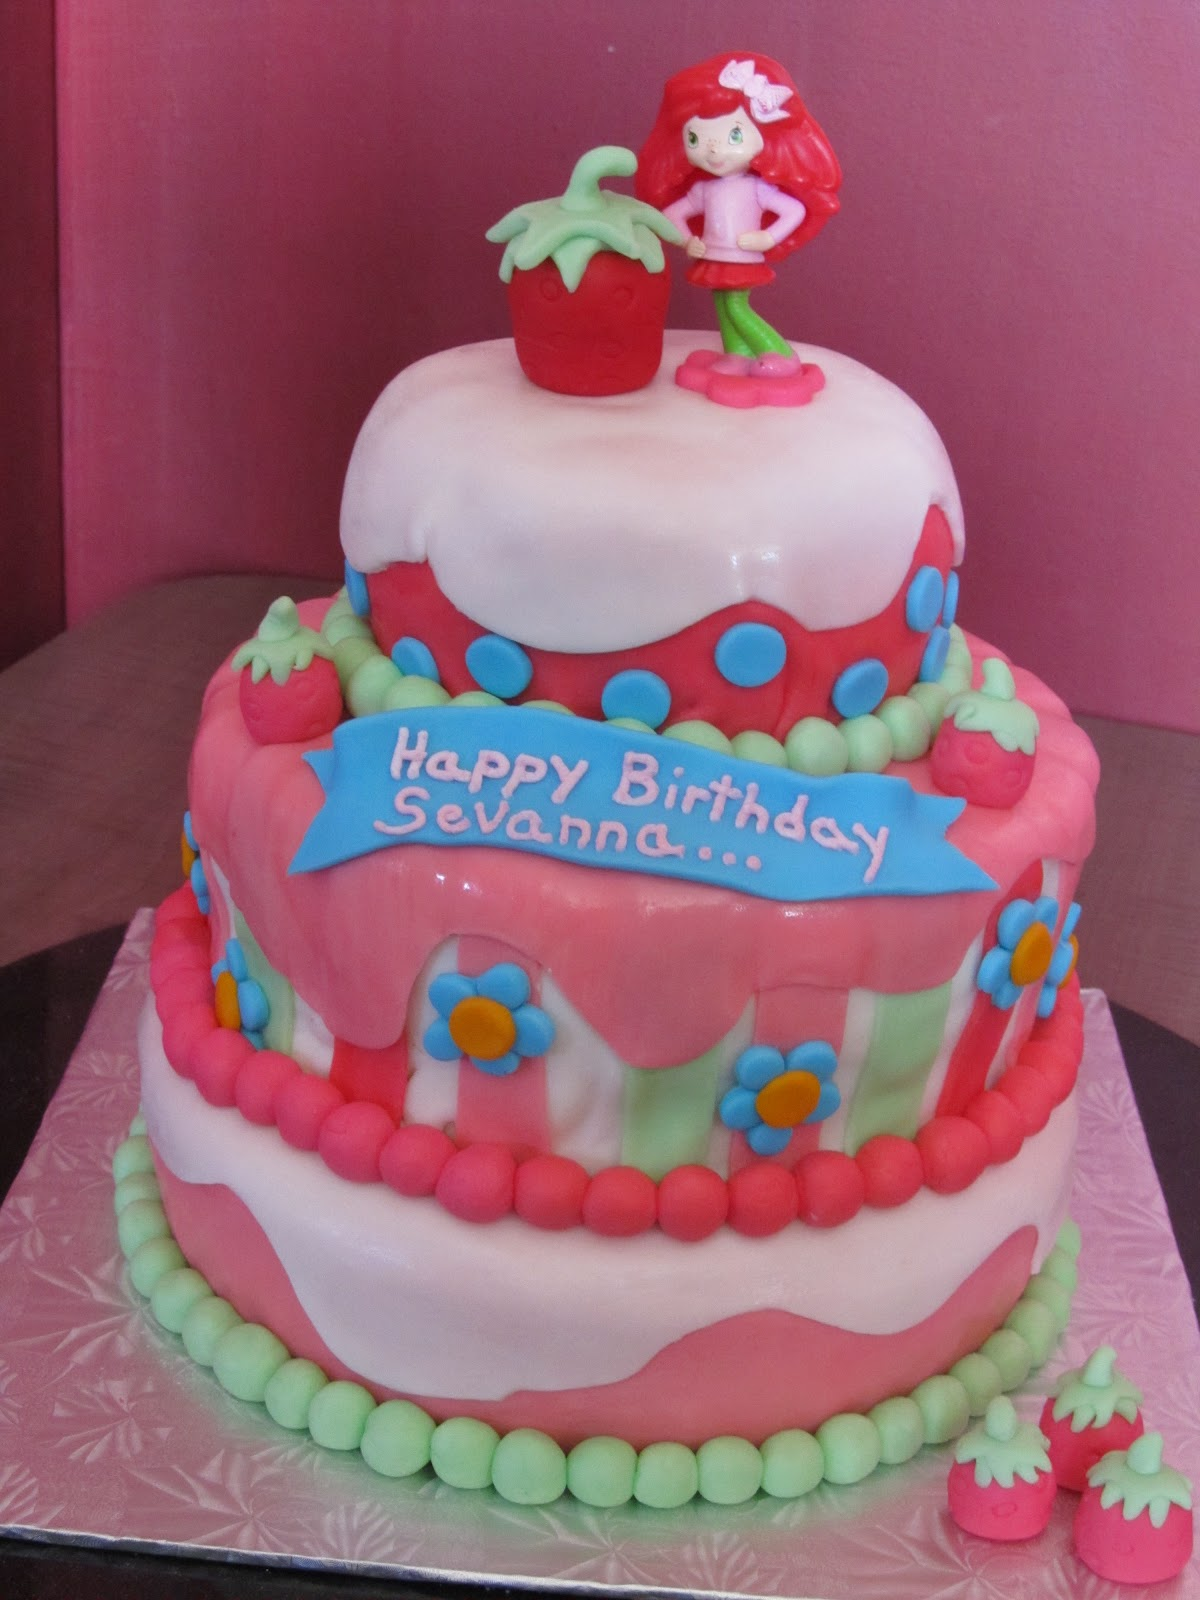 Cake Design With Strawberries : Cake Designs by Steph: Strawberry Shortcake birthday cake!